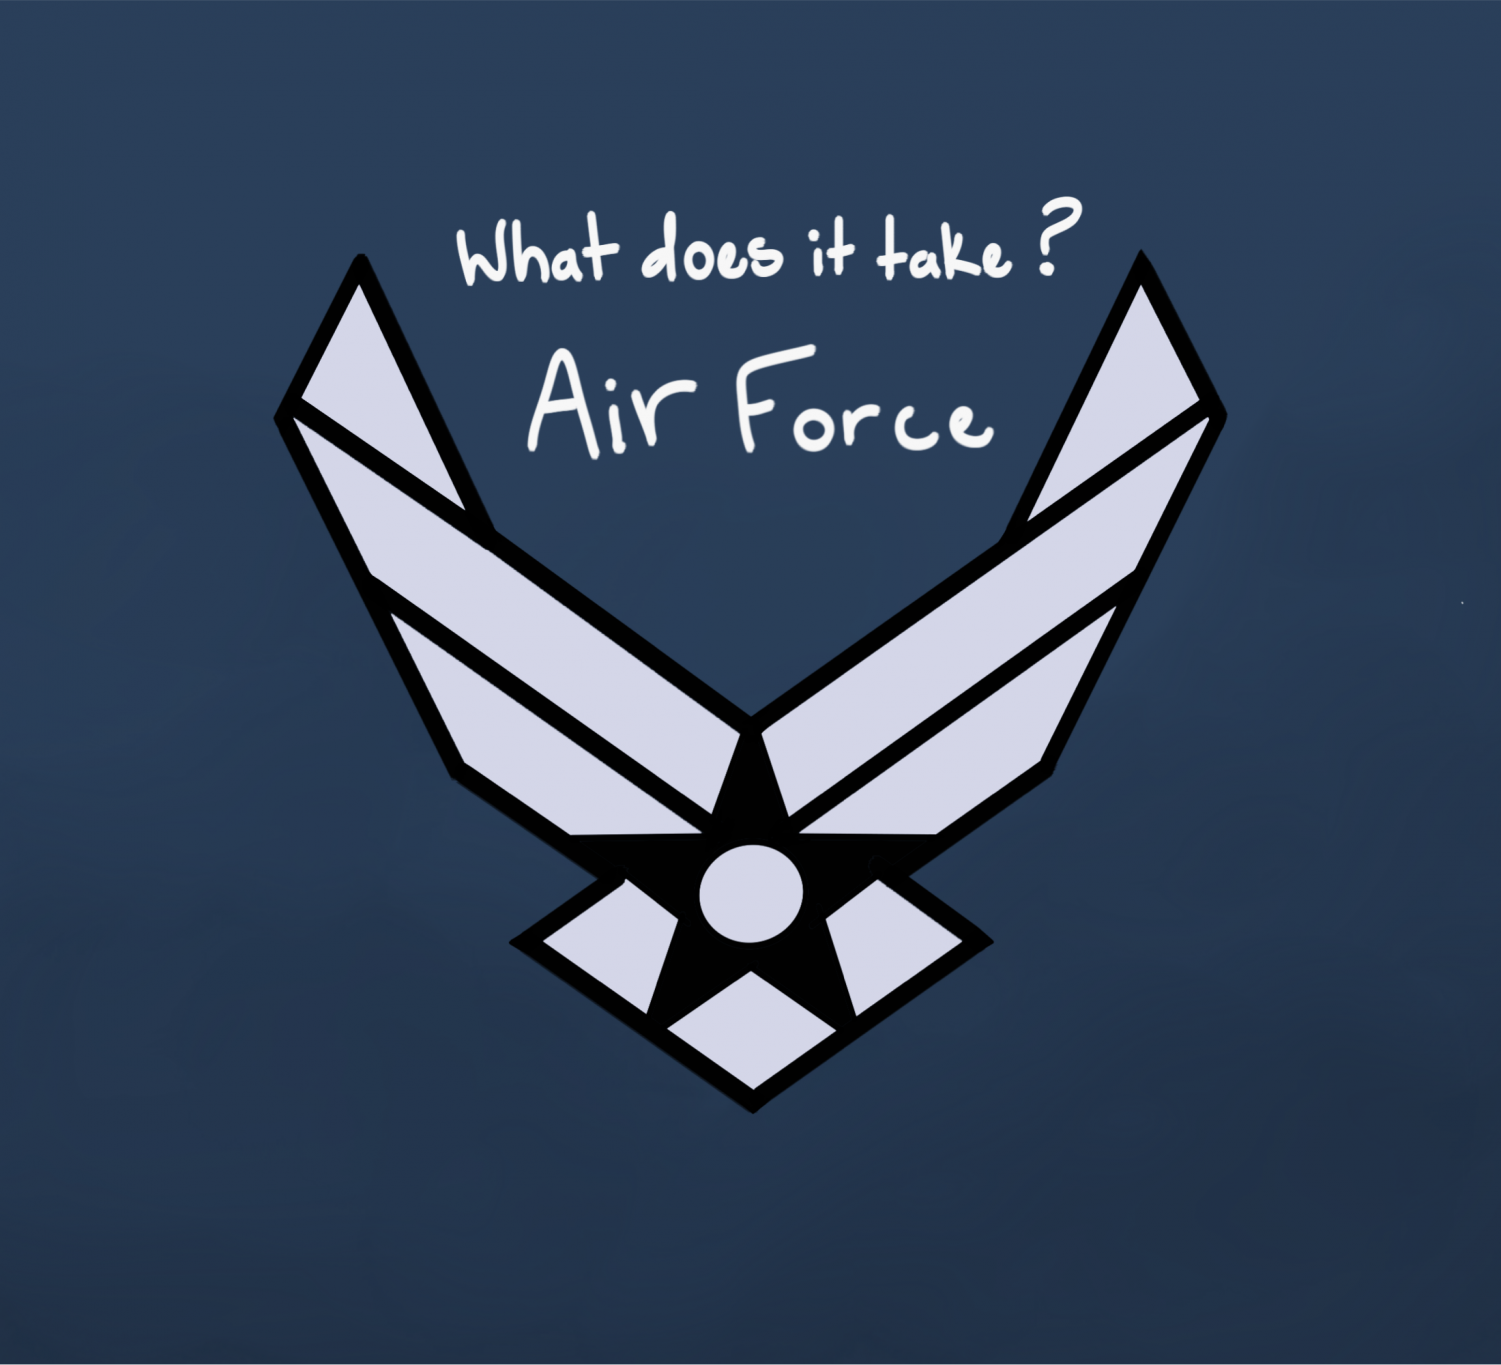 Air+Force%3A+What+does+it+take%3F+%28ft.+A1C+NIGHT+LOGAN%29